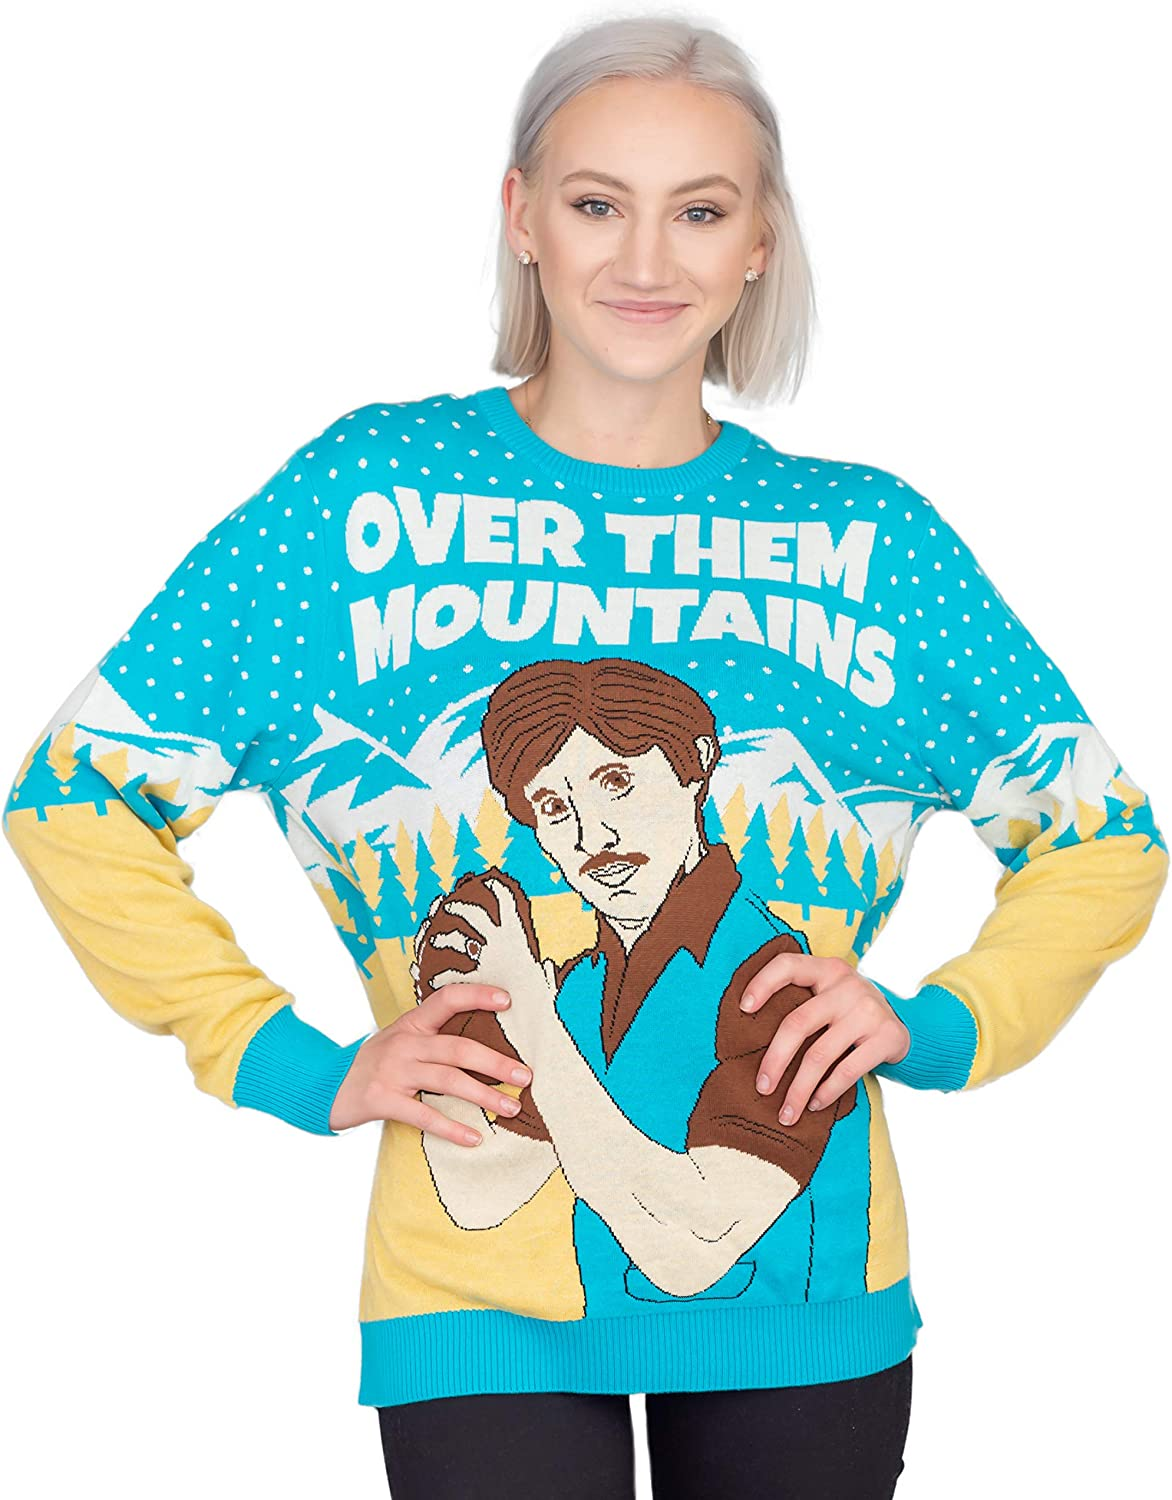 Napoleon Dynamite Uncle Rico Over Them Mountains Ugly Christmas Sweater